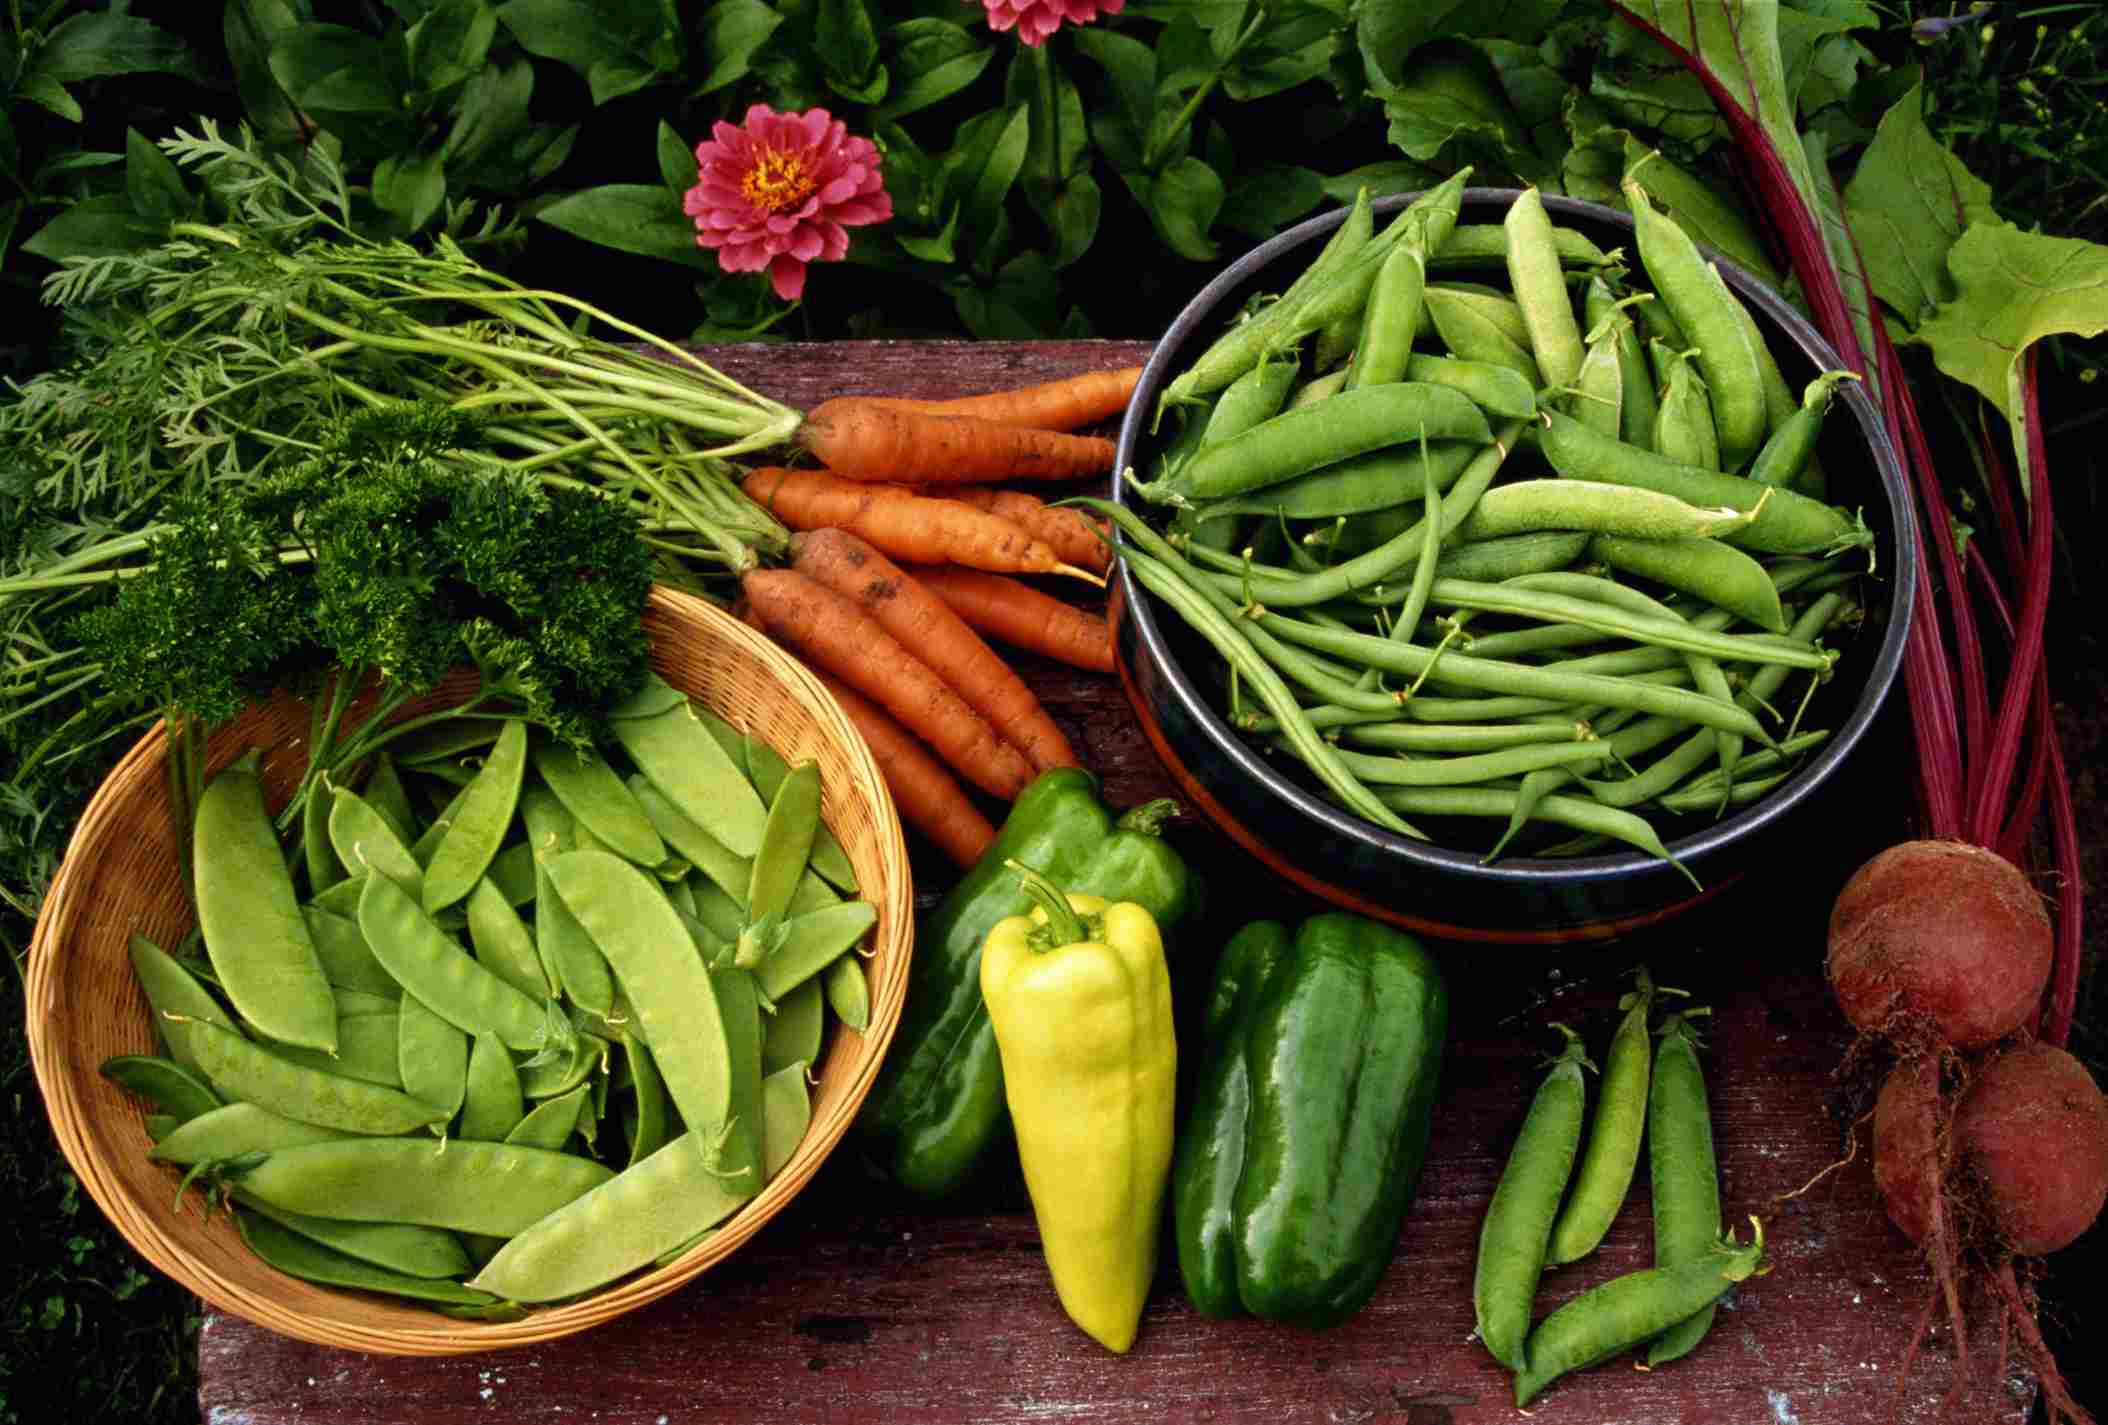 Vegetables will improve your diet.